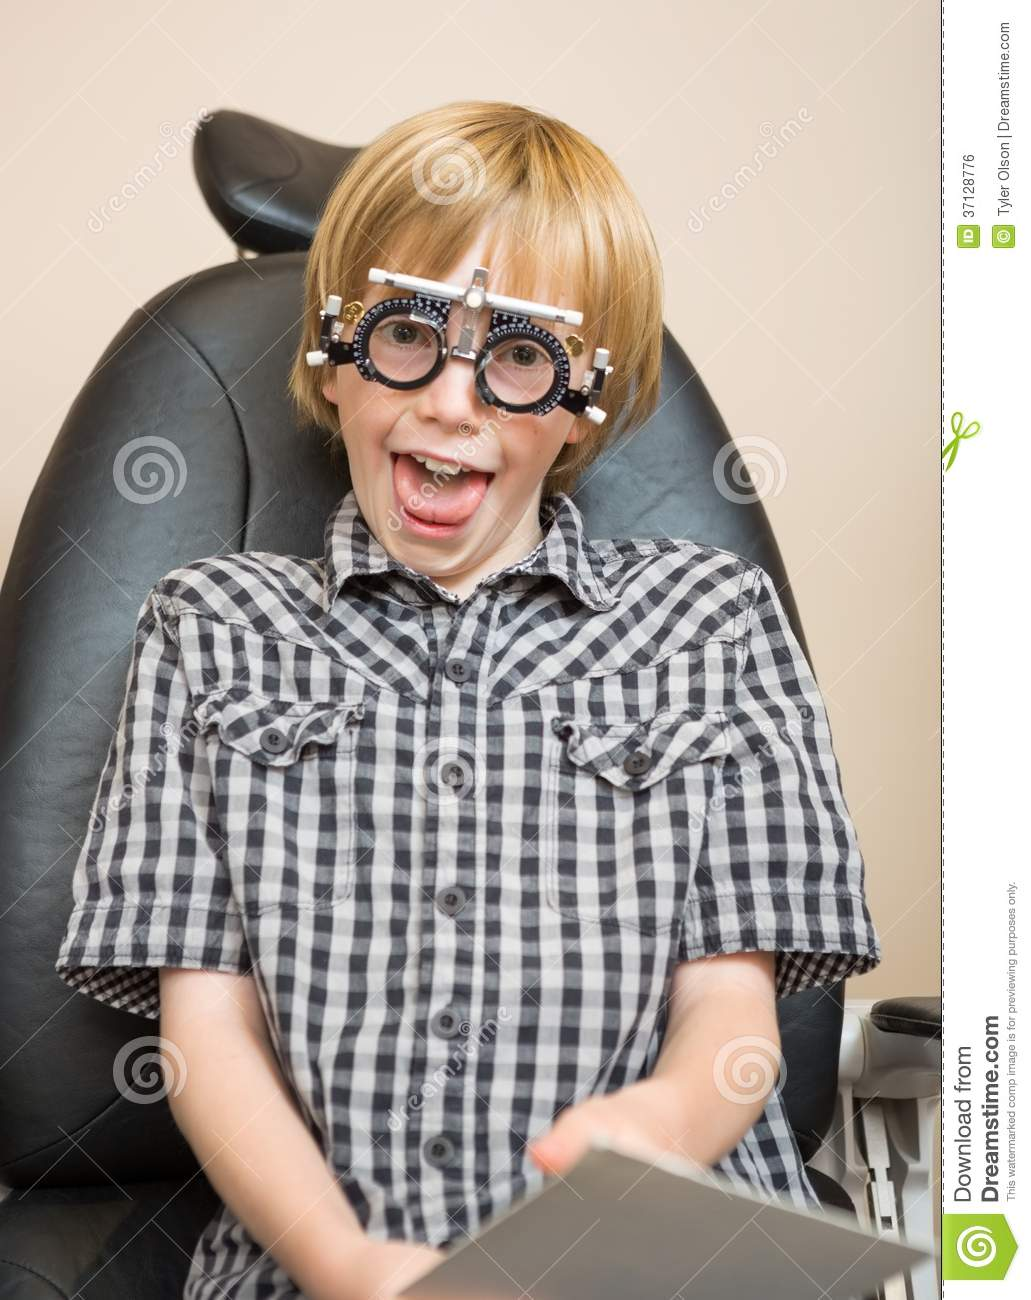 ... Free Stock Image: Boy With Trial Frame Making Funny Face At Optician